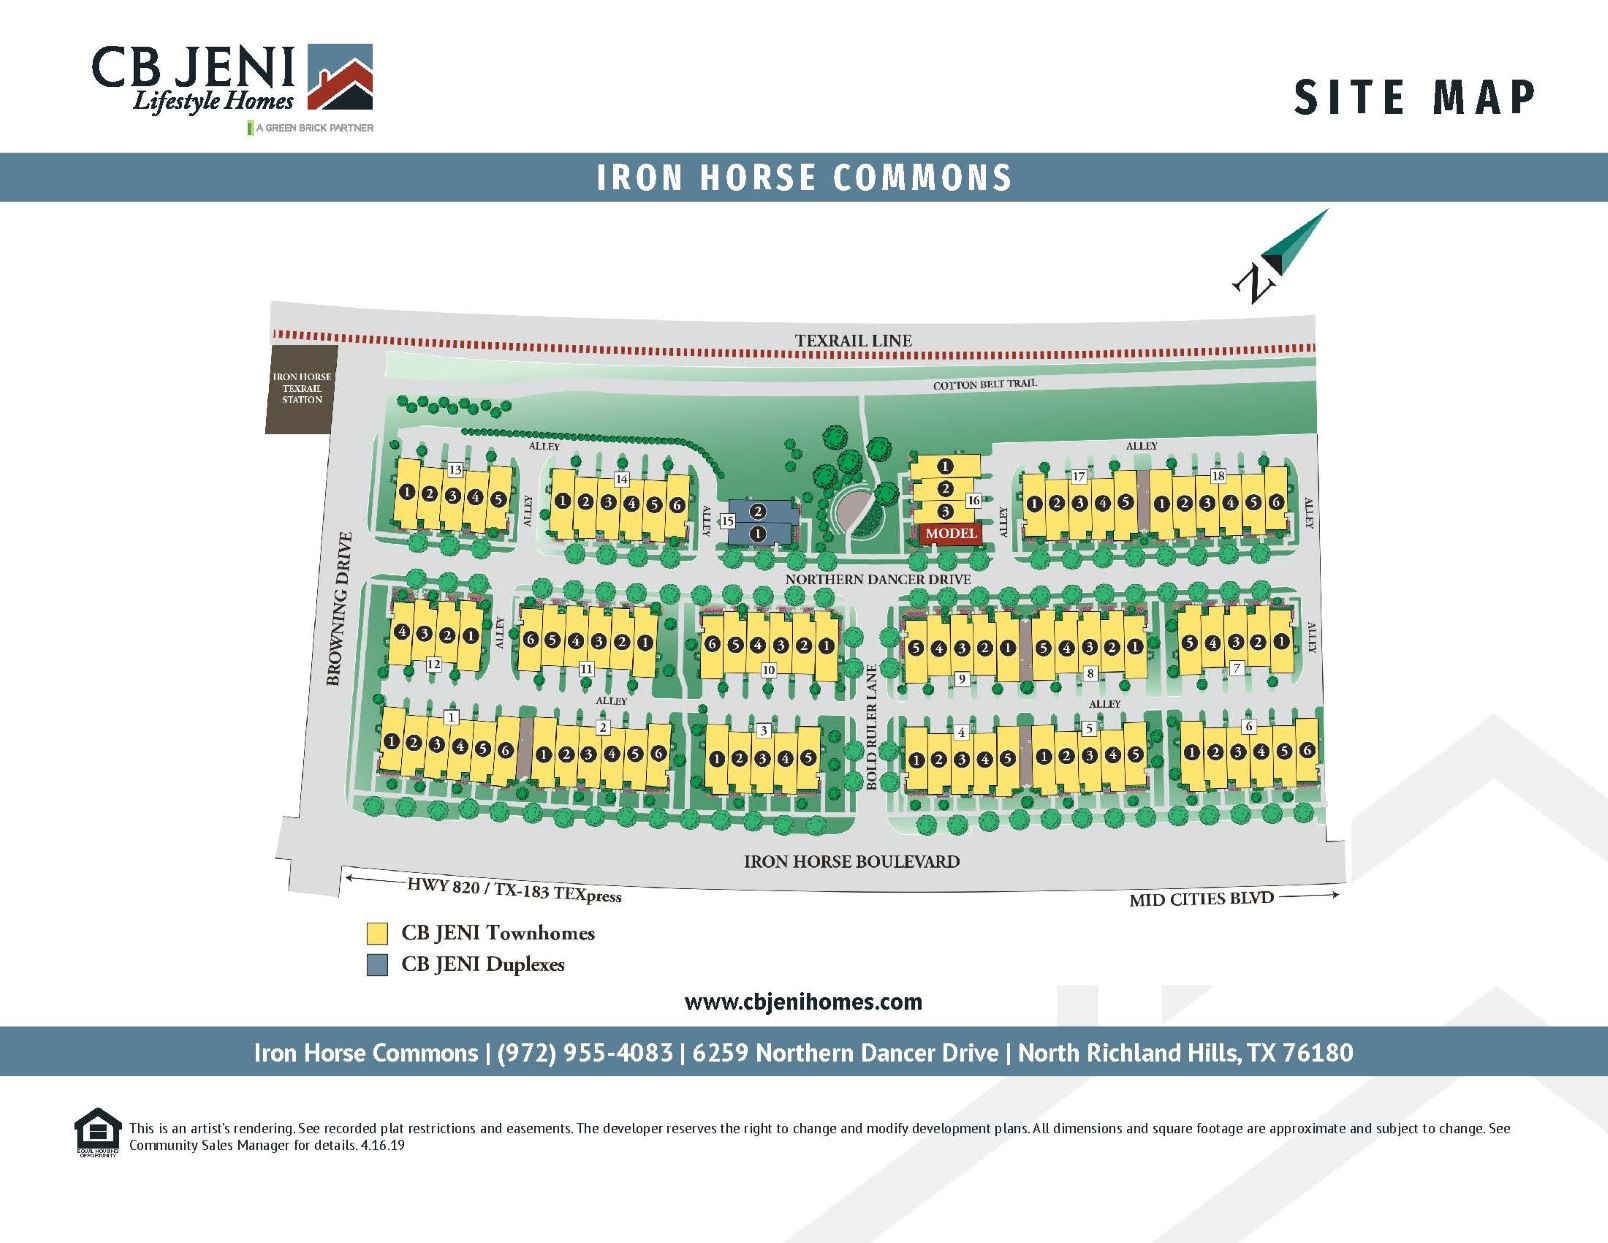 Iron Horse Commons Site Map